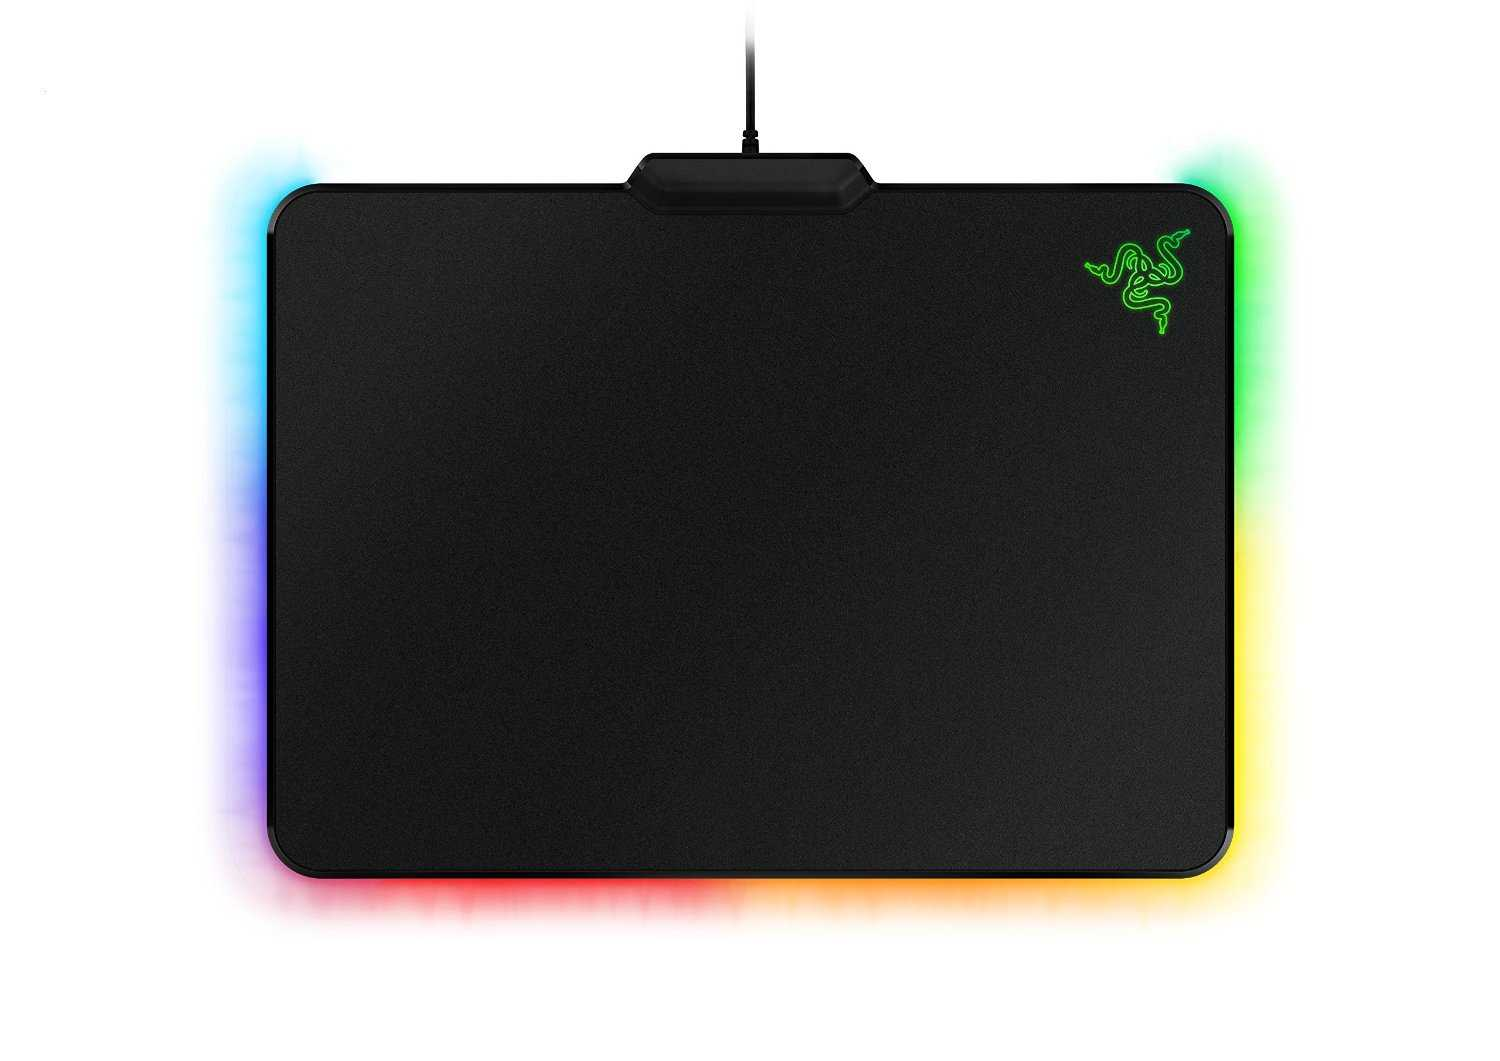 Best Gaming Mouse Pad Review 2020 : Buyer's Guide cover image